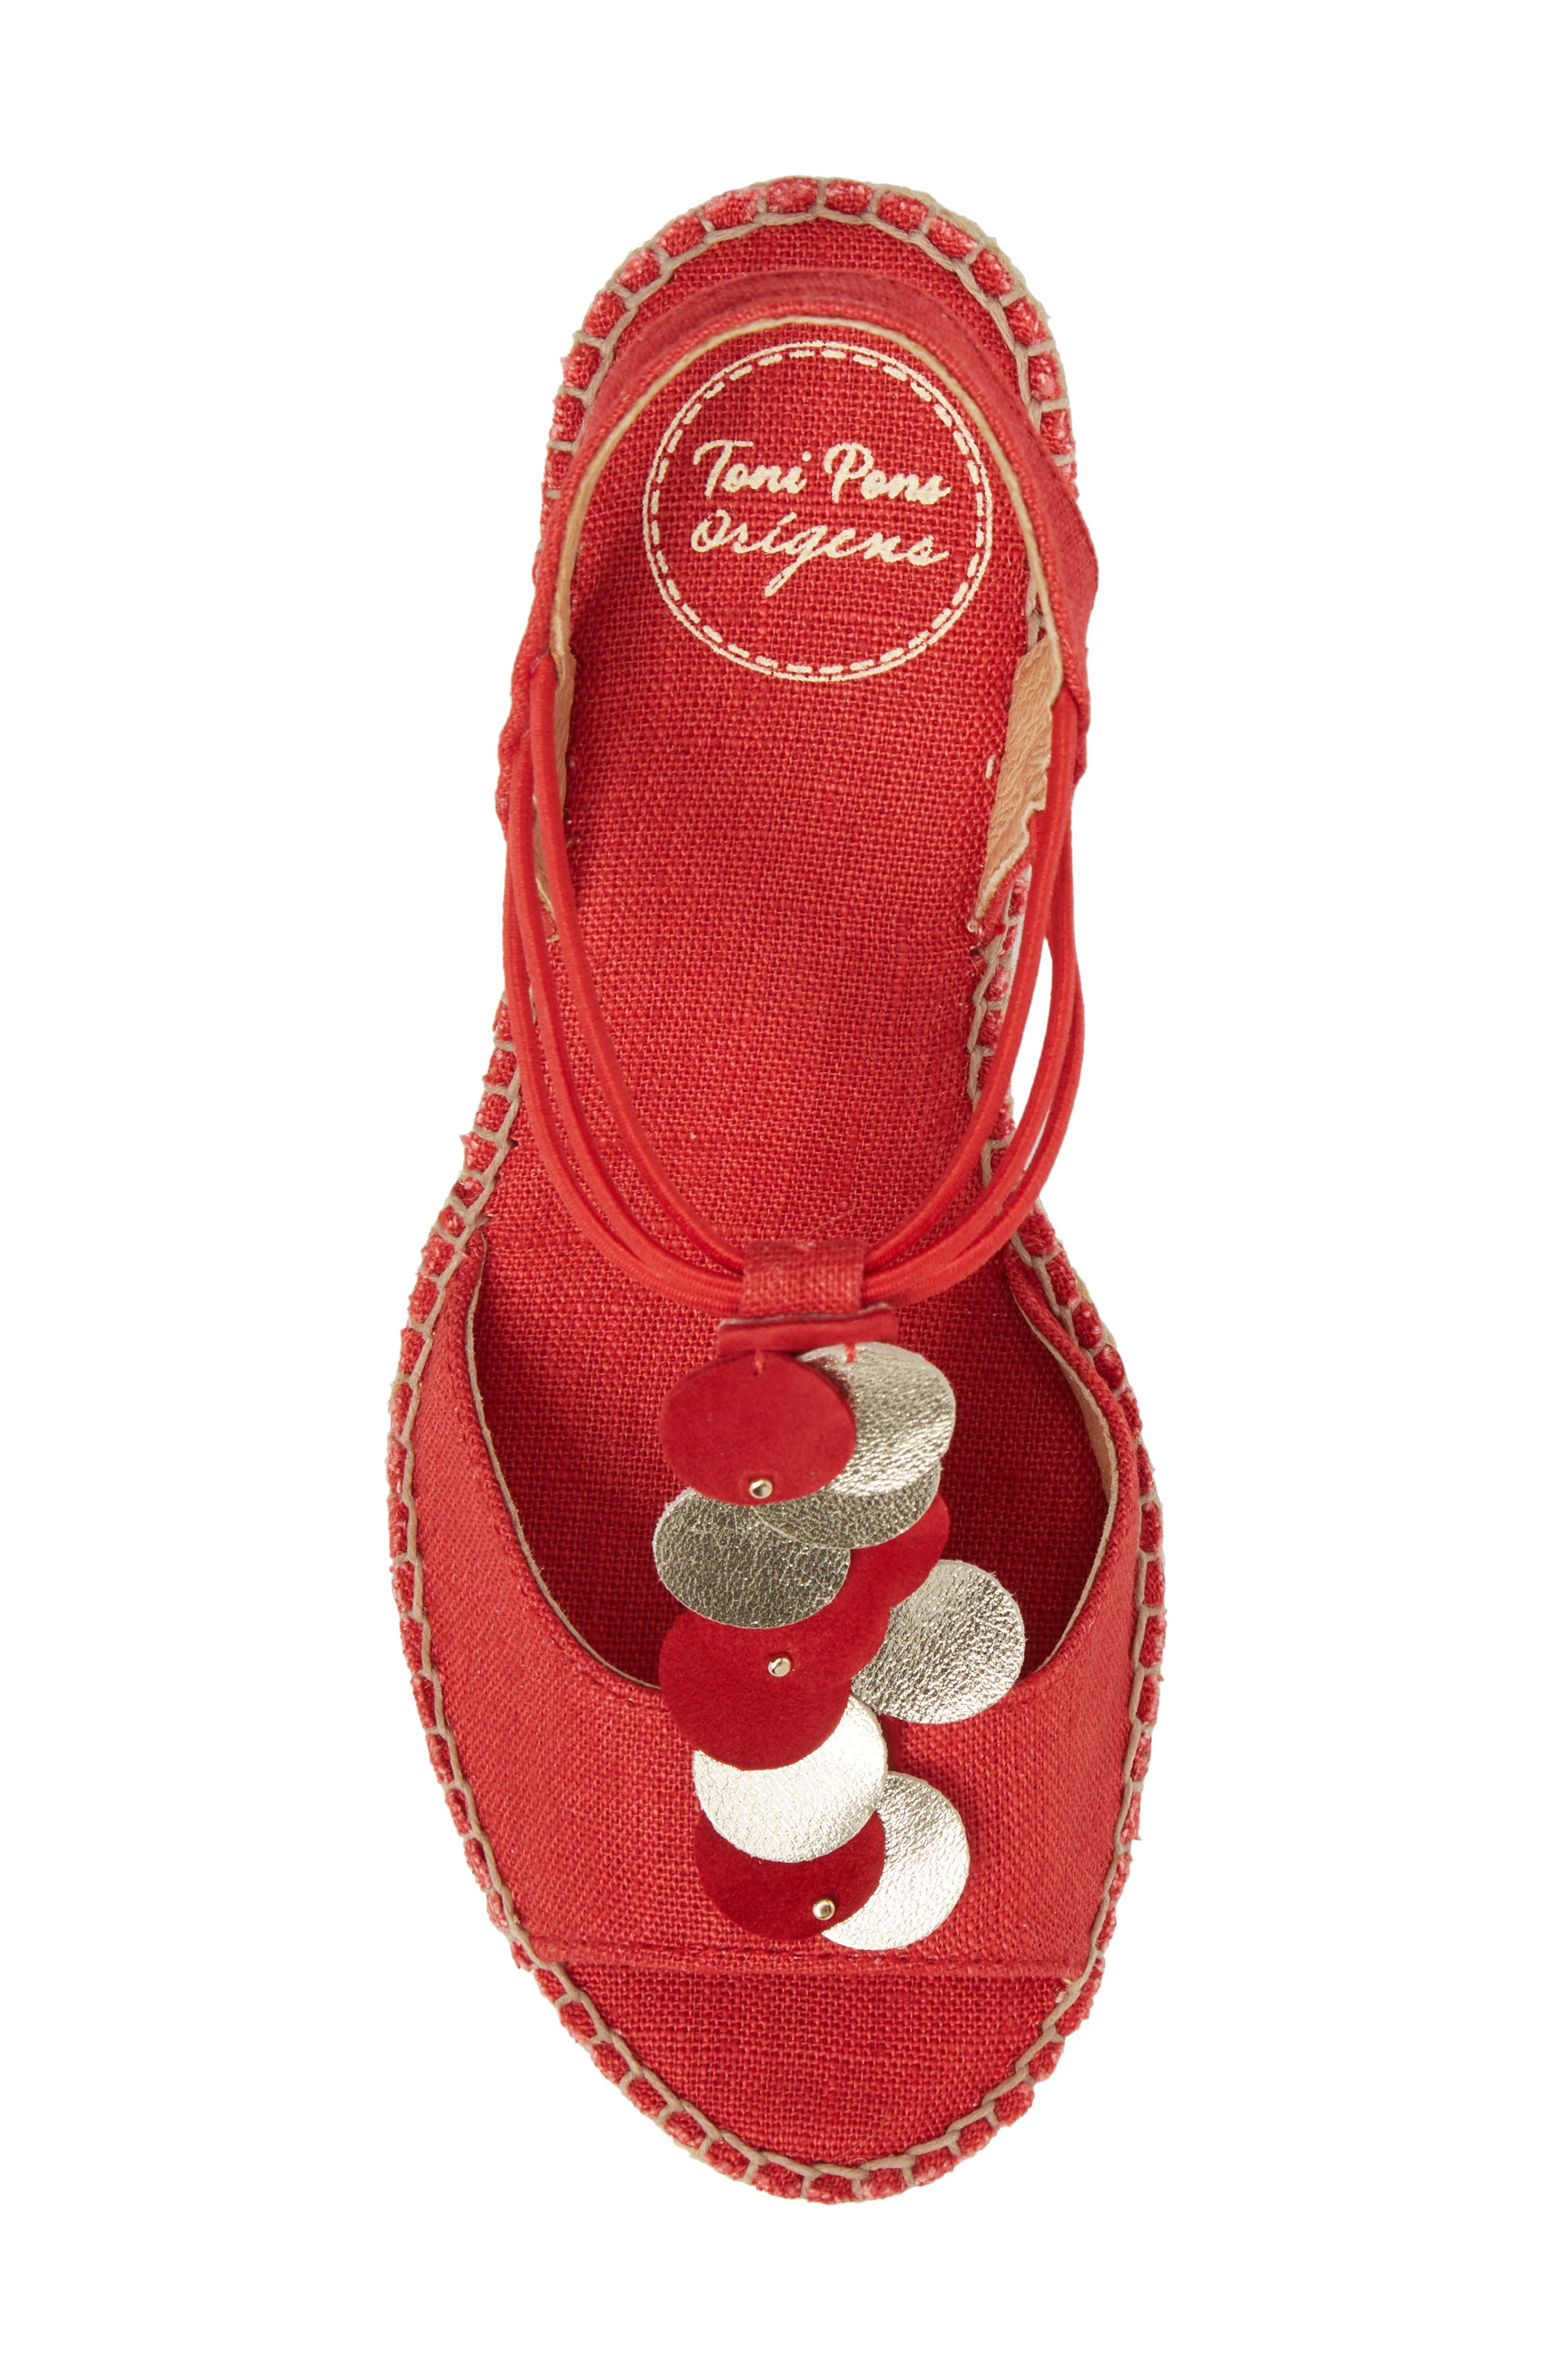 Sitges Espadrille Sandal,                             Alternate thumbnail 5, color,                             Red Fabric